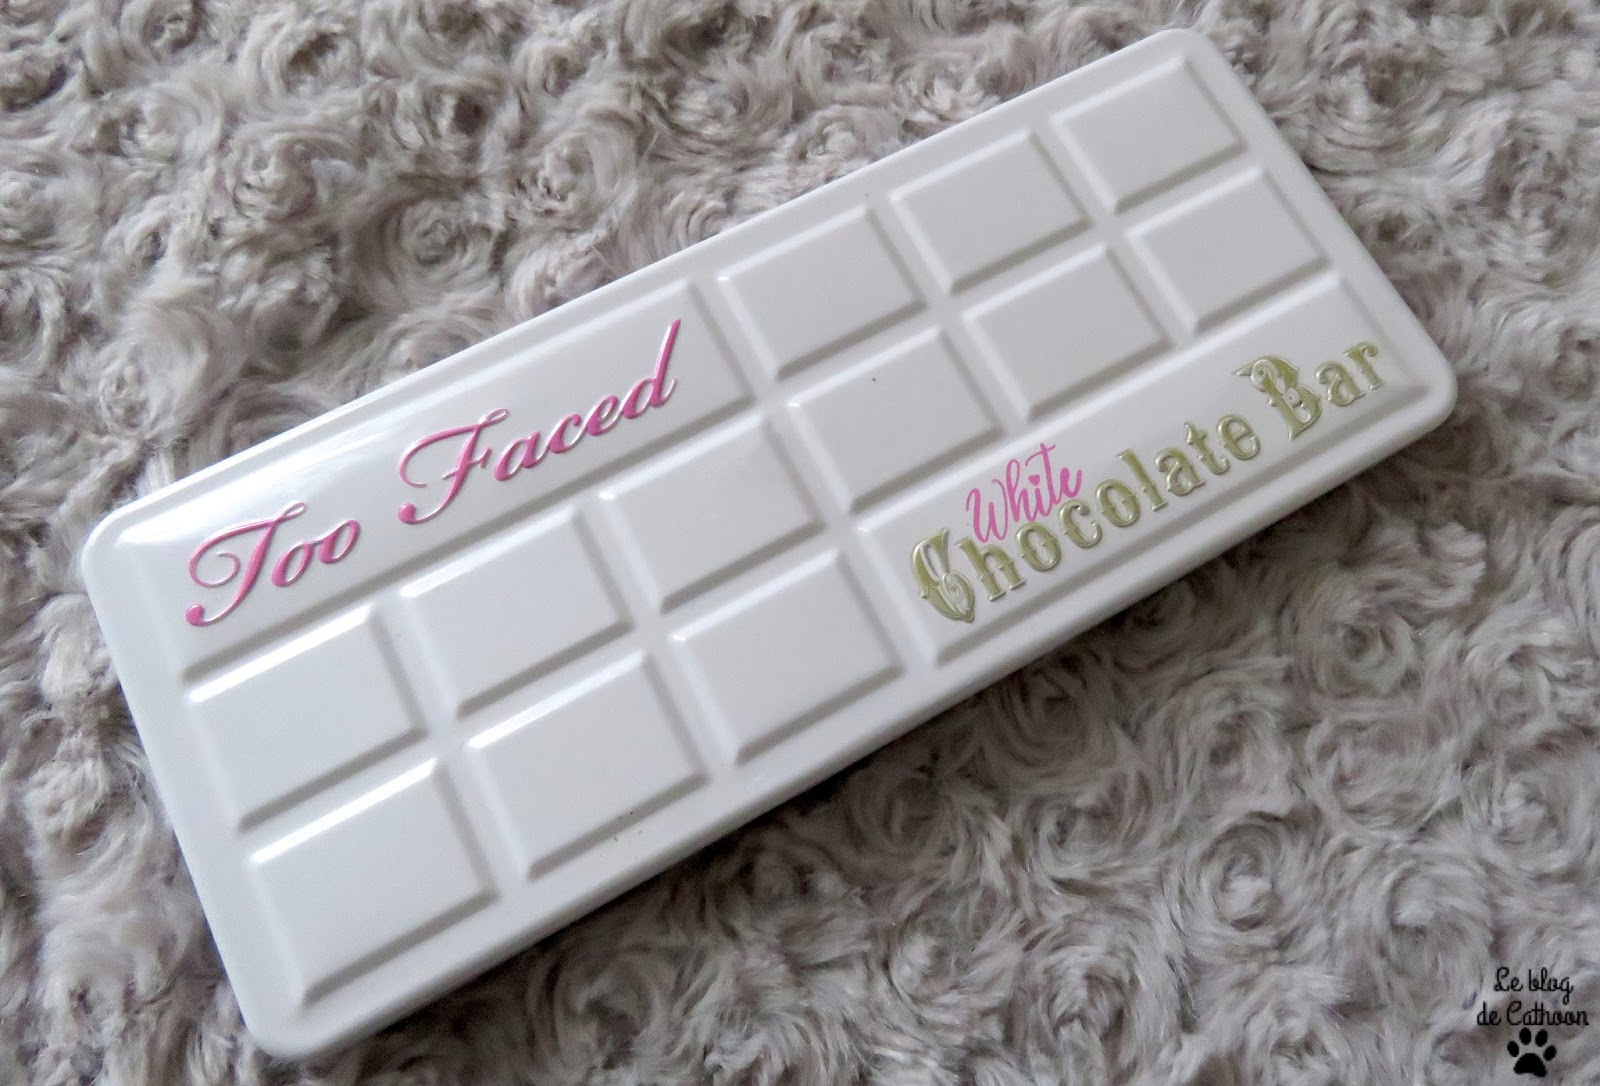 make up white chocolate Bar Too Faced